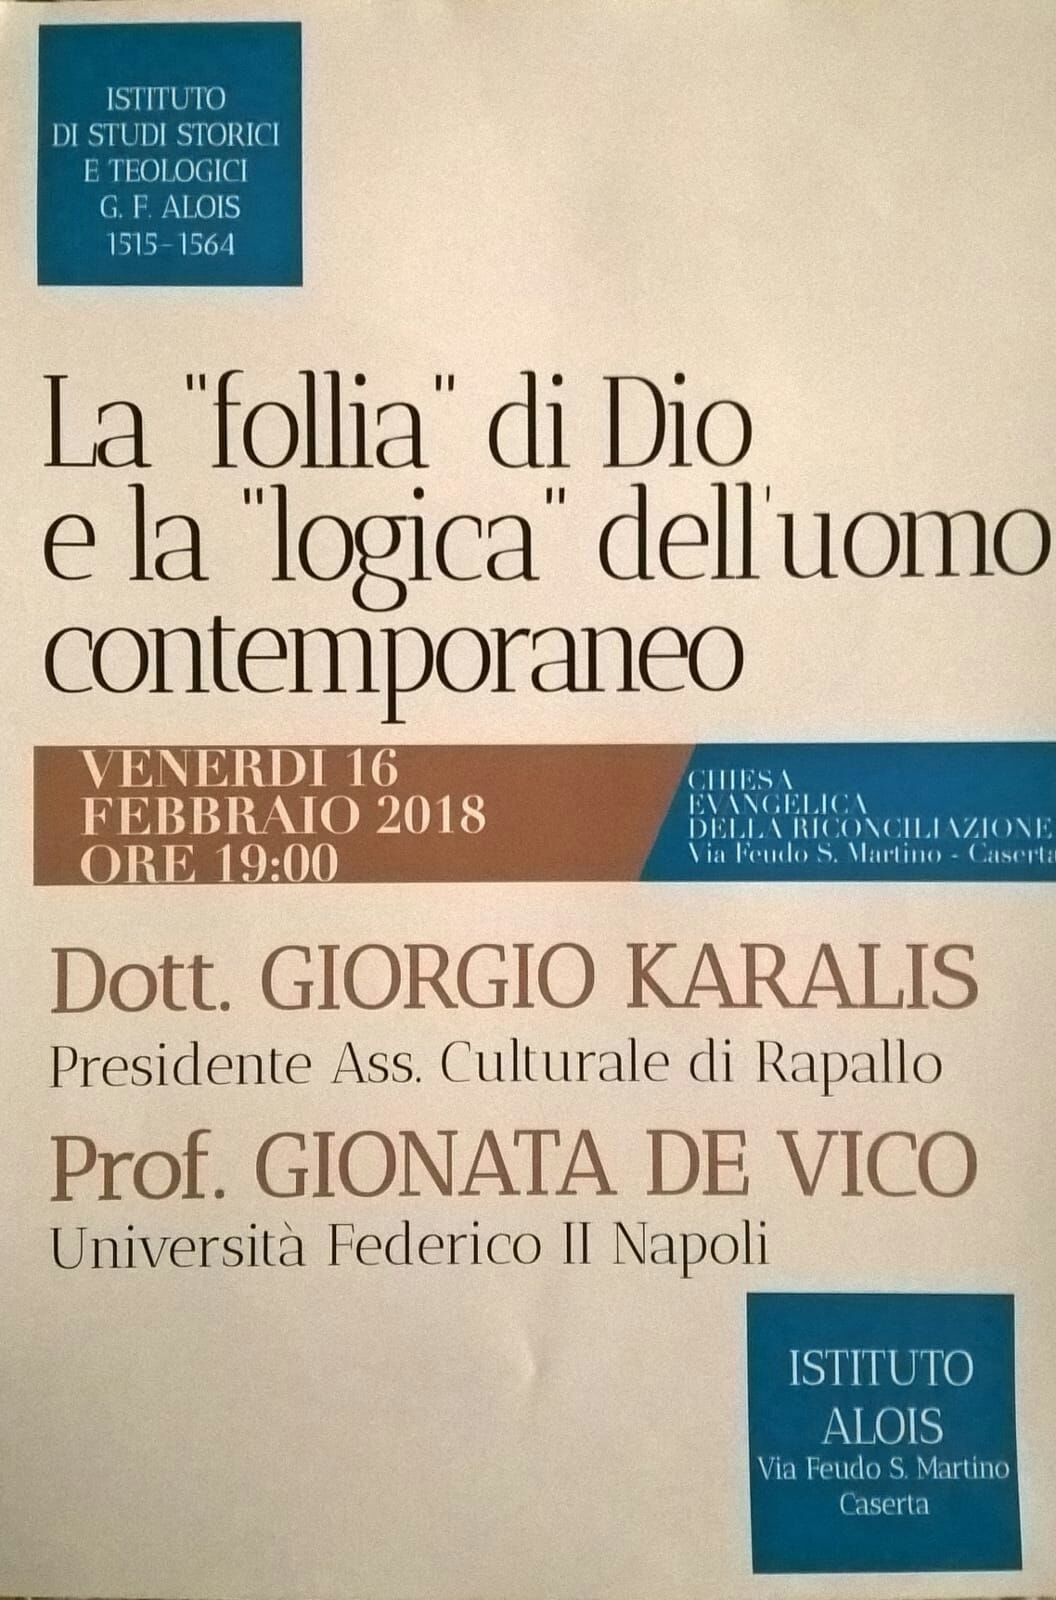 lafolliadidio